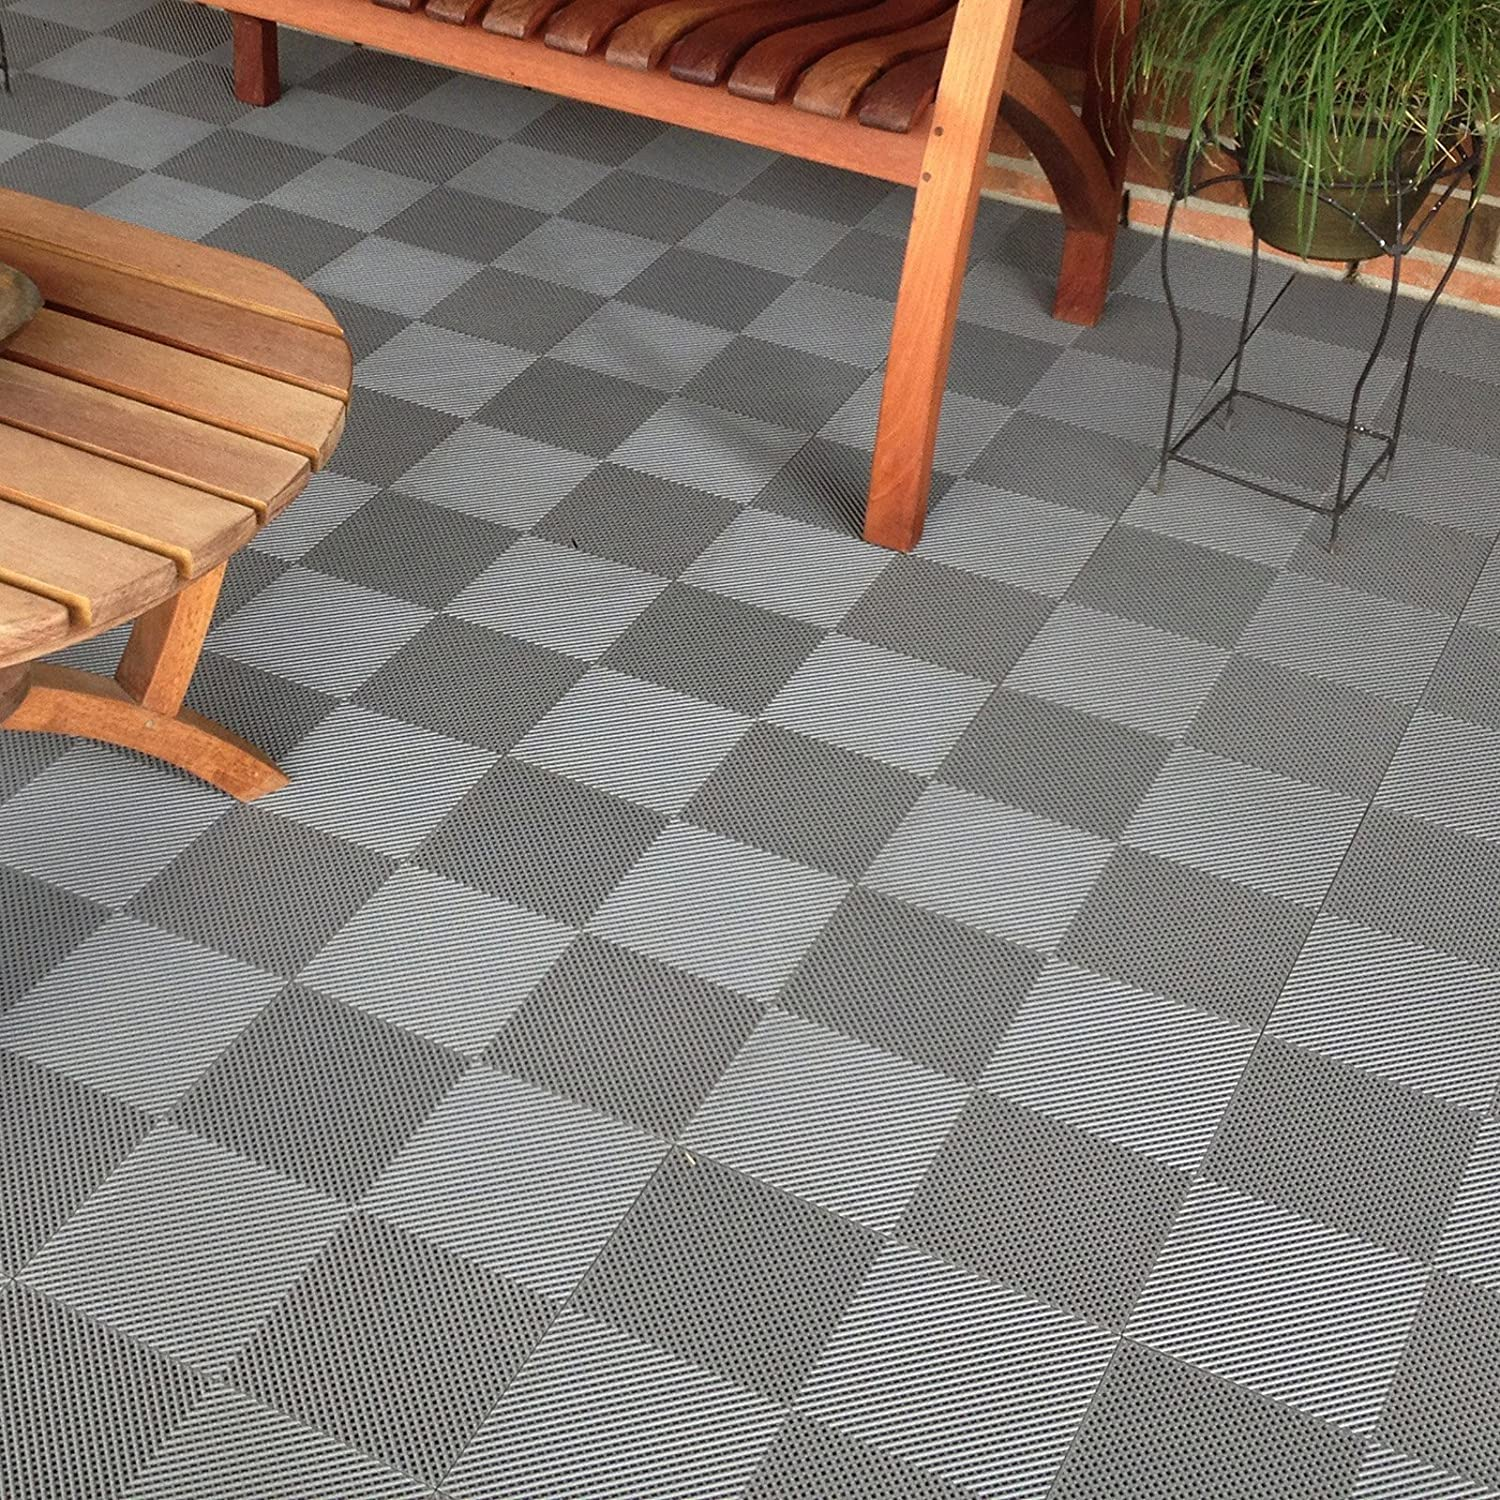 Amazon blocktile b2us4630 deck and patio flooring amazon blocktile b2us4630 deck and patio flooring interlocking tiles perforated pack gray 30 pack home improvement dailygadgetfo Choice Image